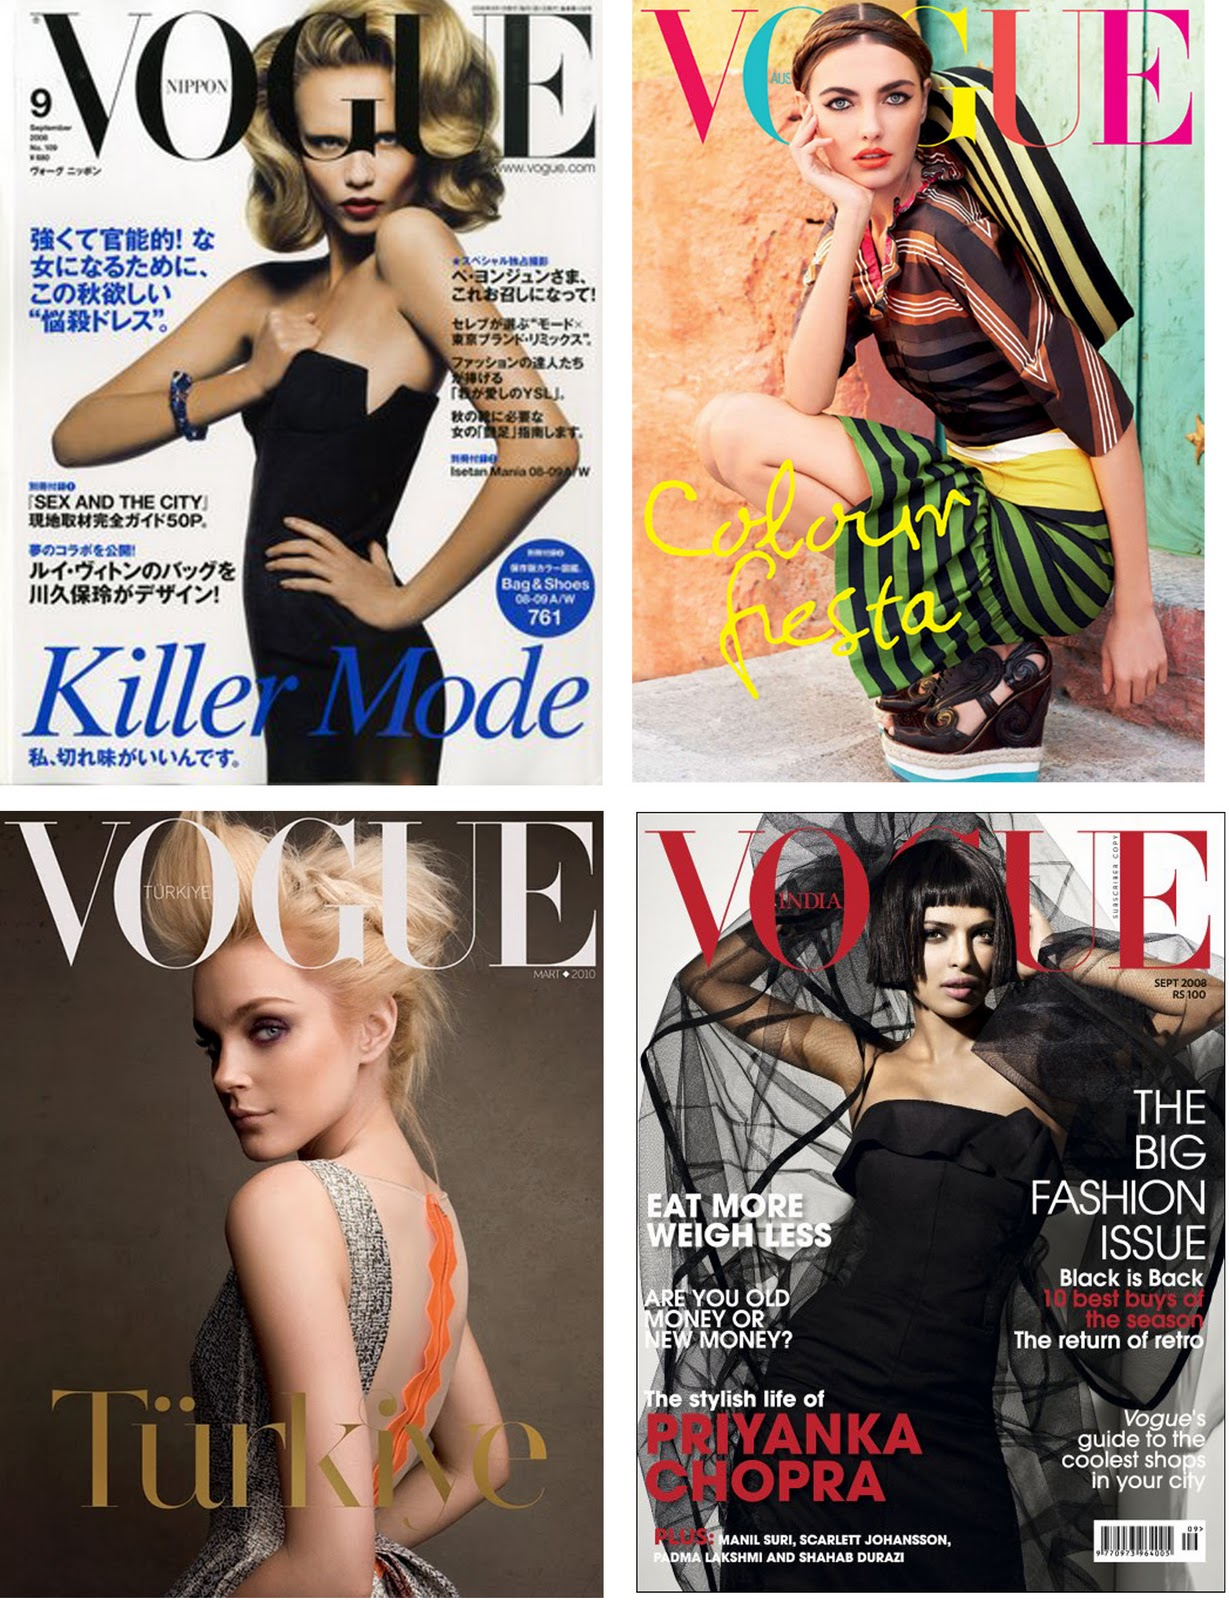 http://2.bp.blogspot.com/-4Zx4Xw7llVc/TnU8OFbrEiI/AAAAAAAADk4/fxbloYCWZWc/s1600/Vogue+covers+around+the+world+5.jpg